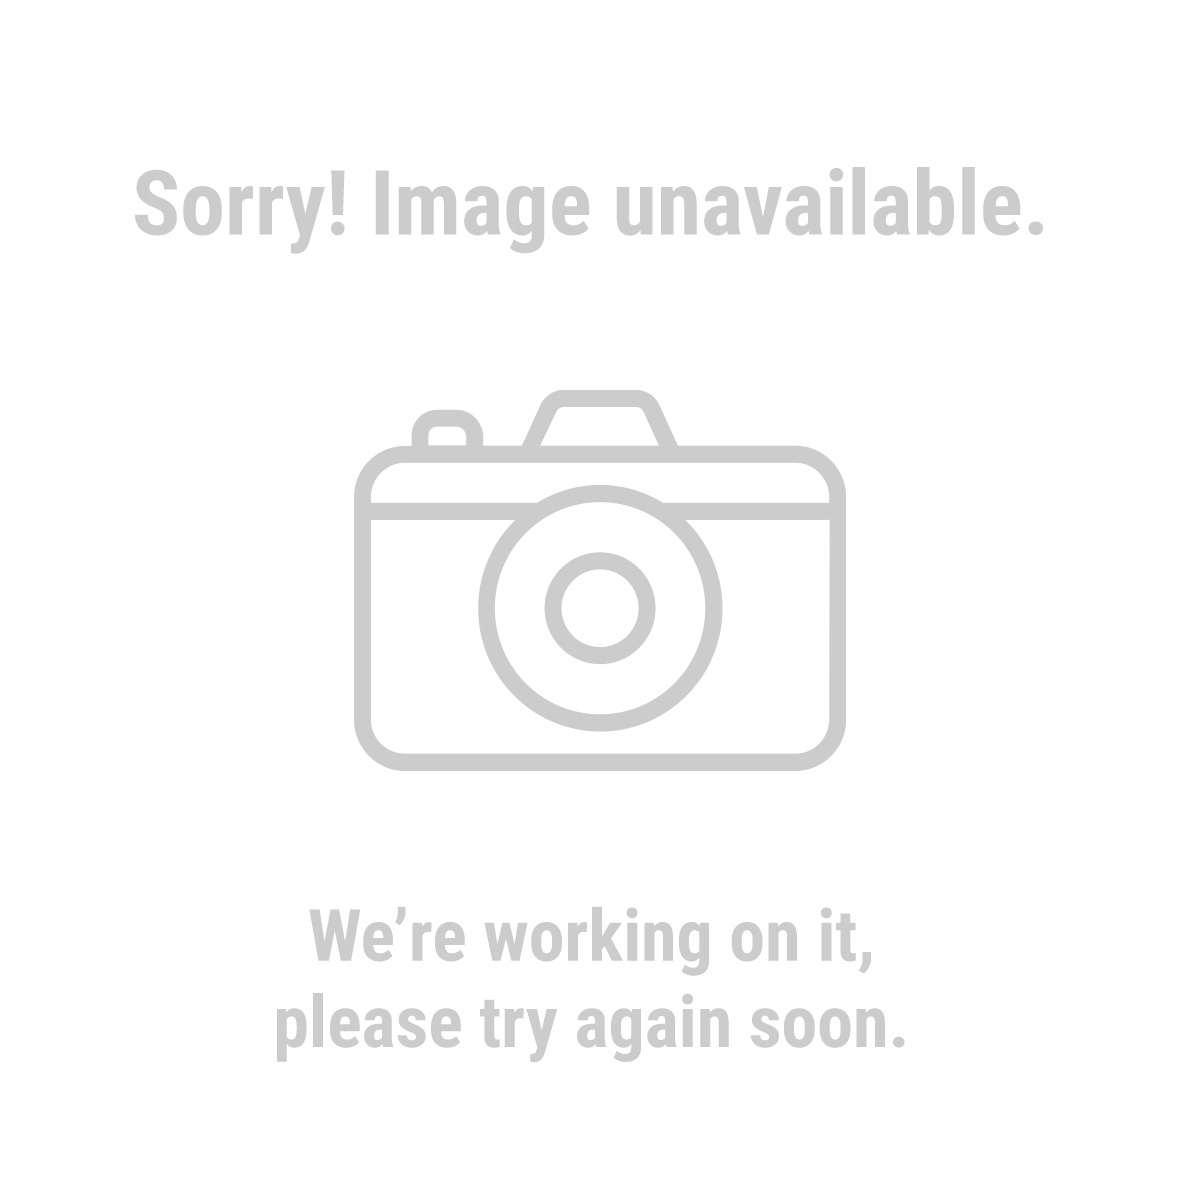 "Pittsburgh 47902 40 Piece 3/8"" and 1/4"" Drive Socket Set"